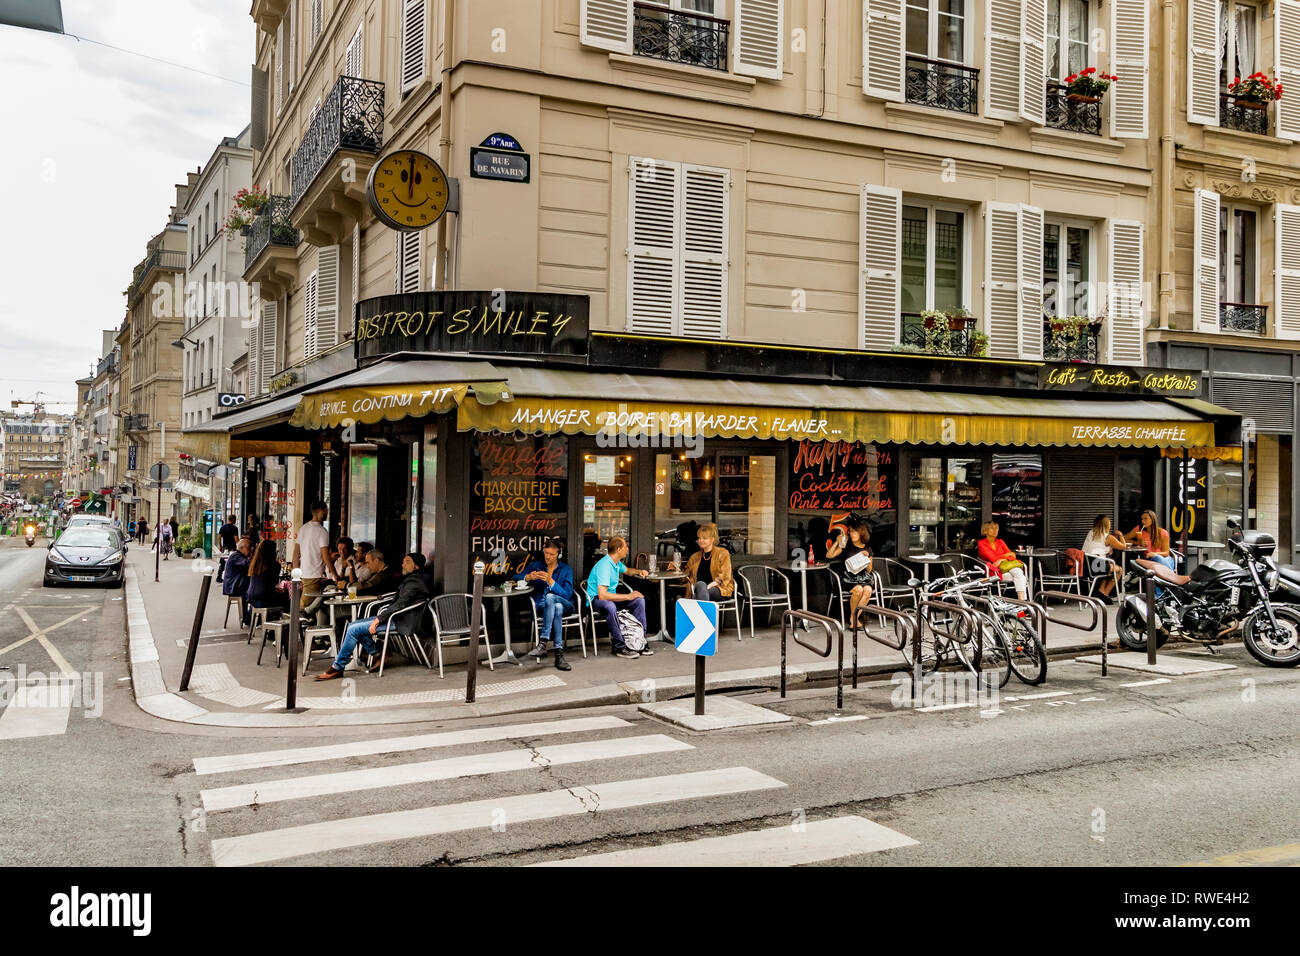 People sitting outside Bistrot Smiley on Rue des Martyrs in the St Georges area of Paris - Stock Image